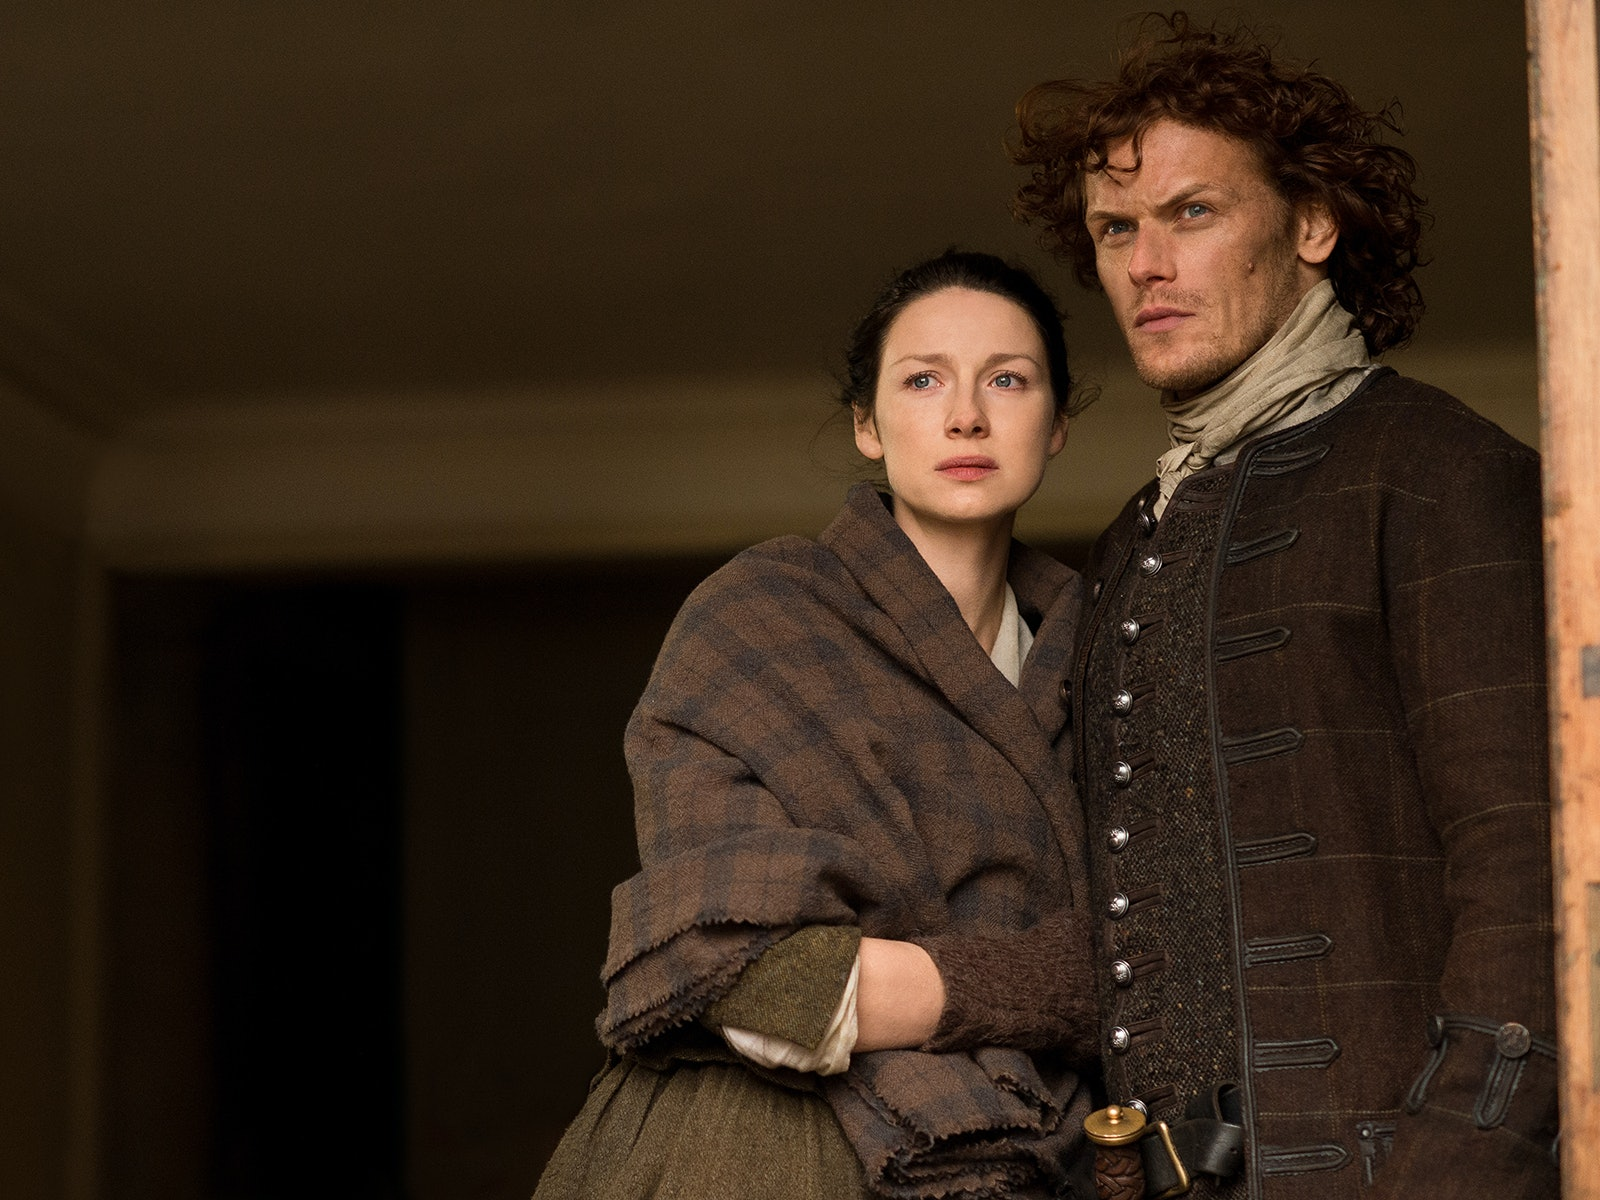 'Outlander' Season 3 Will Be Its Greatest